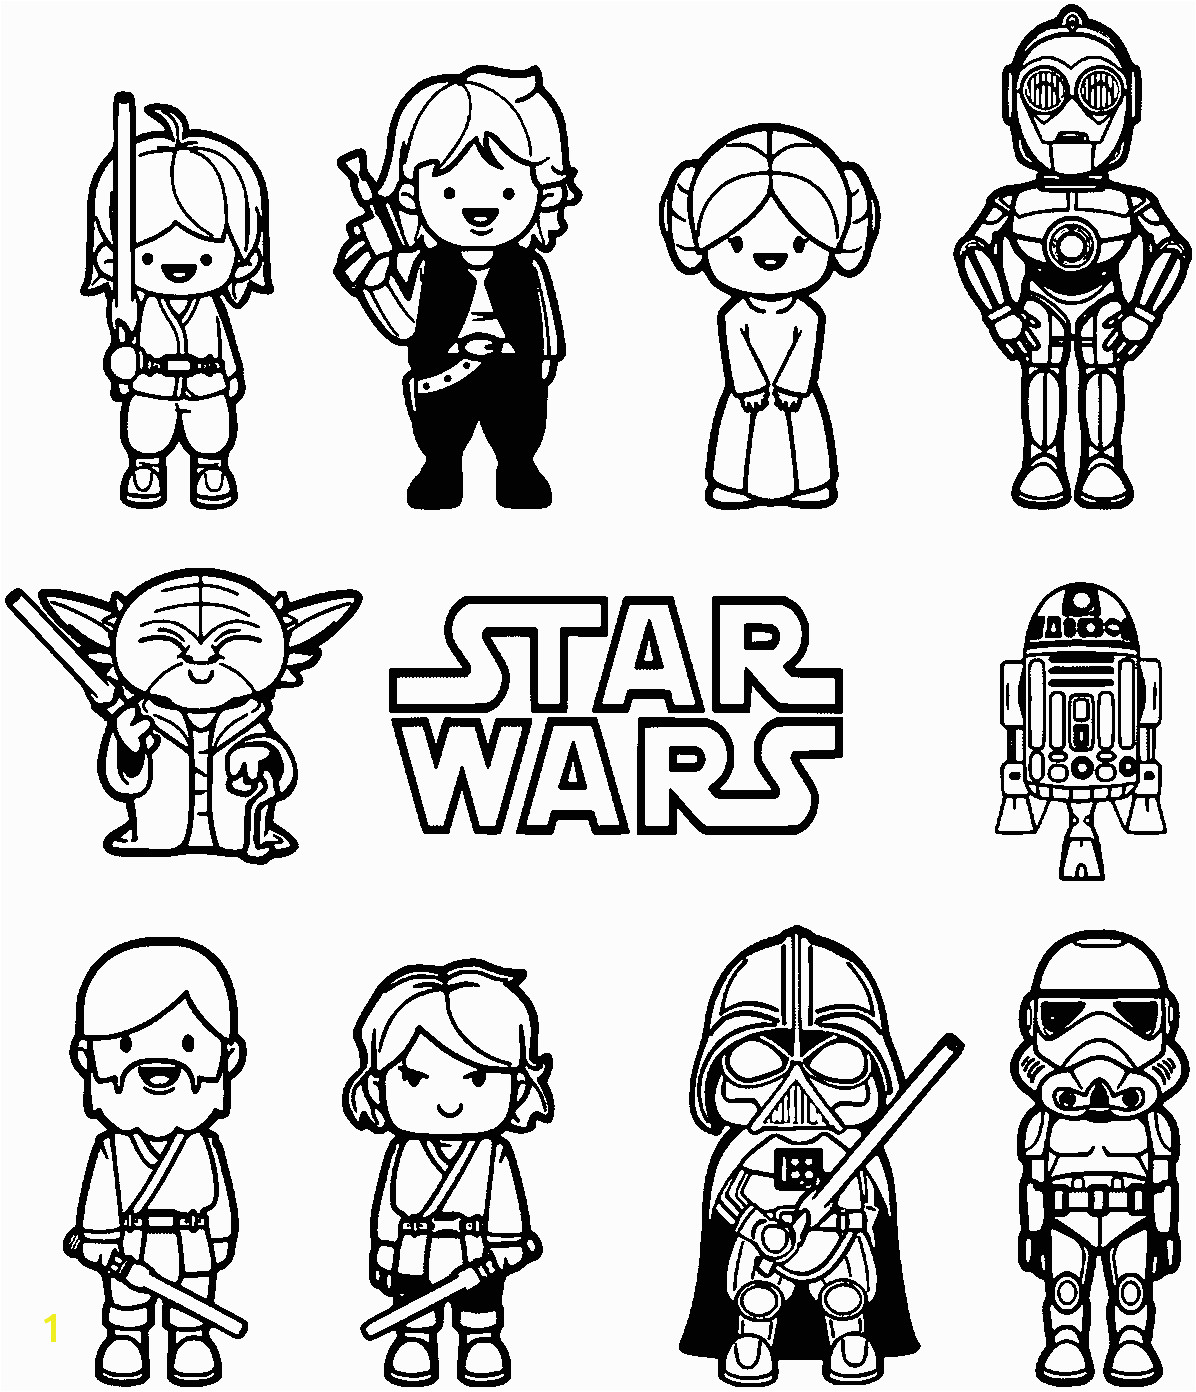 star wars coloring pages luke skywalker star wars coloring pages angry birds star wars coloring pages darth vader 1196—1392